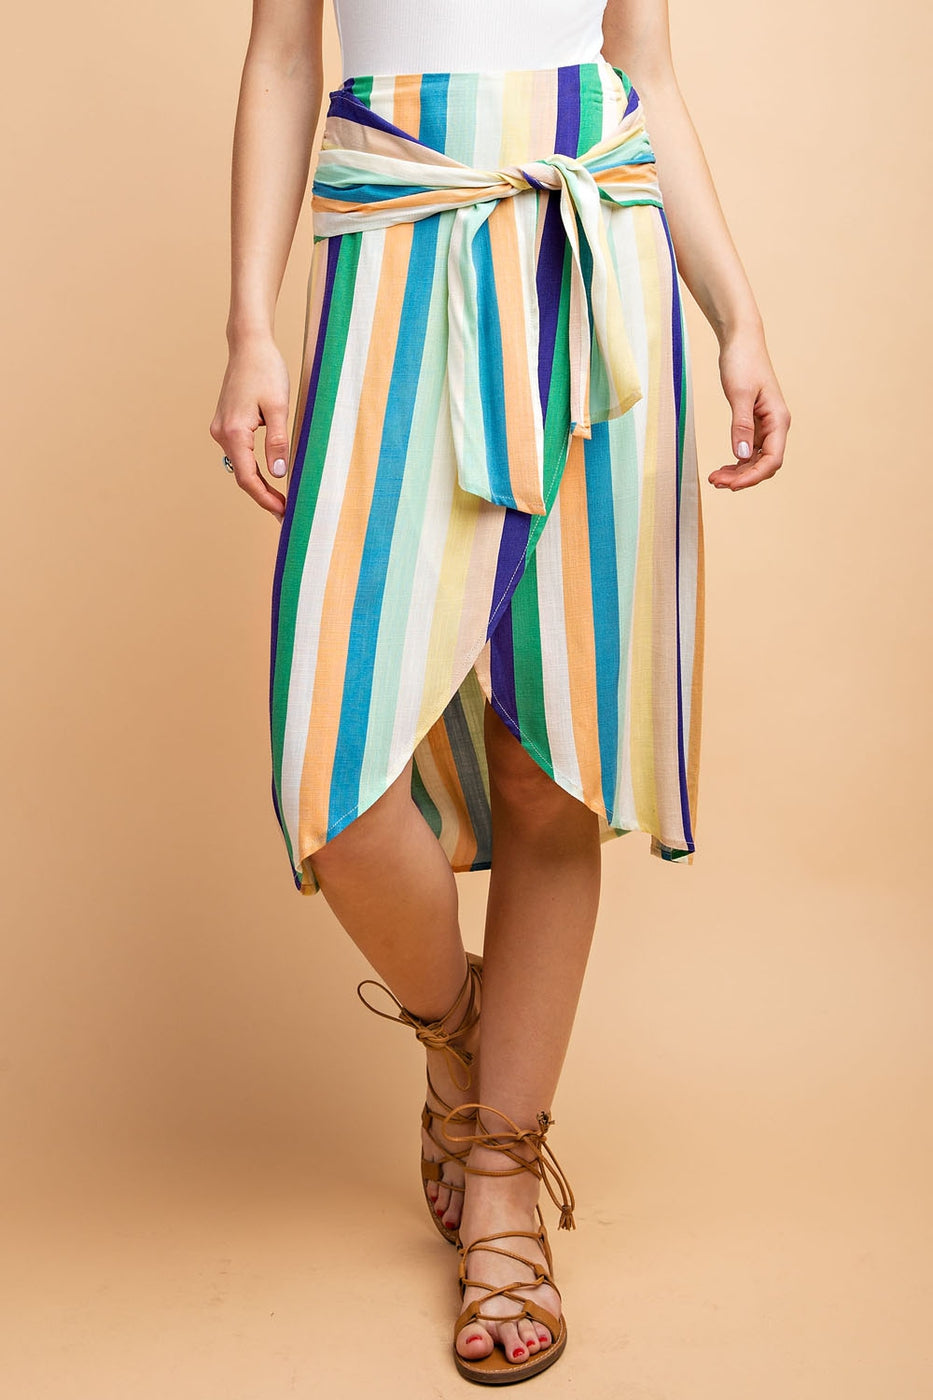 Stripe Print Front Tie Wrap Skirt In Mint-Cobalt-Mango Siin Bees